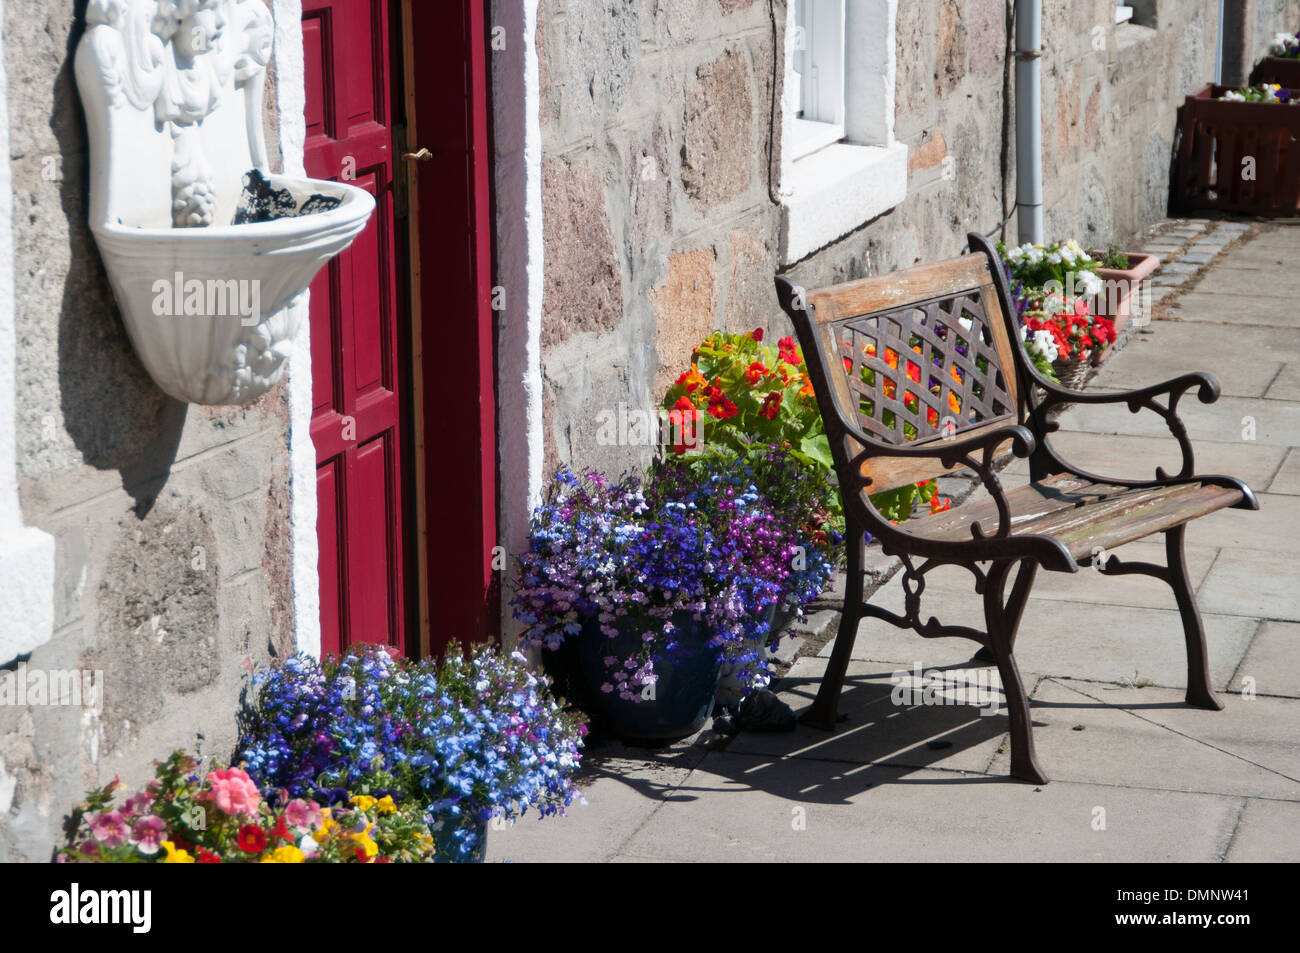 footdee garden bench potted plants footdee old  village - Stock Image